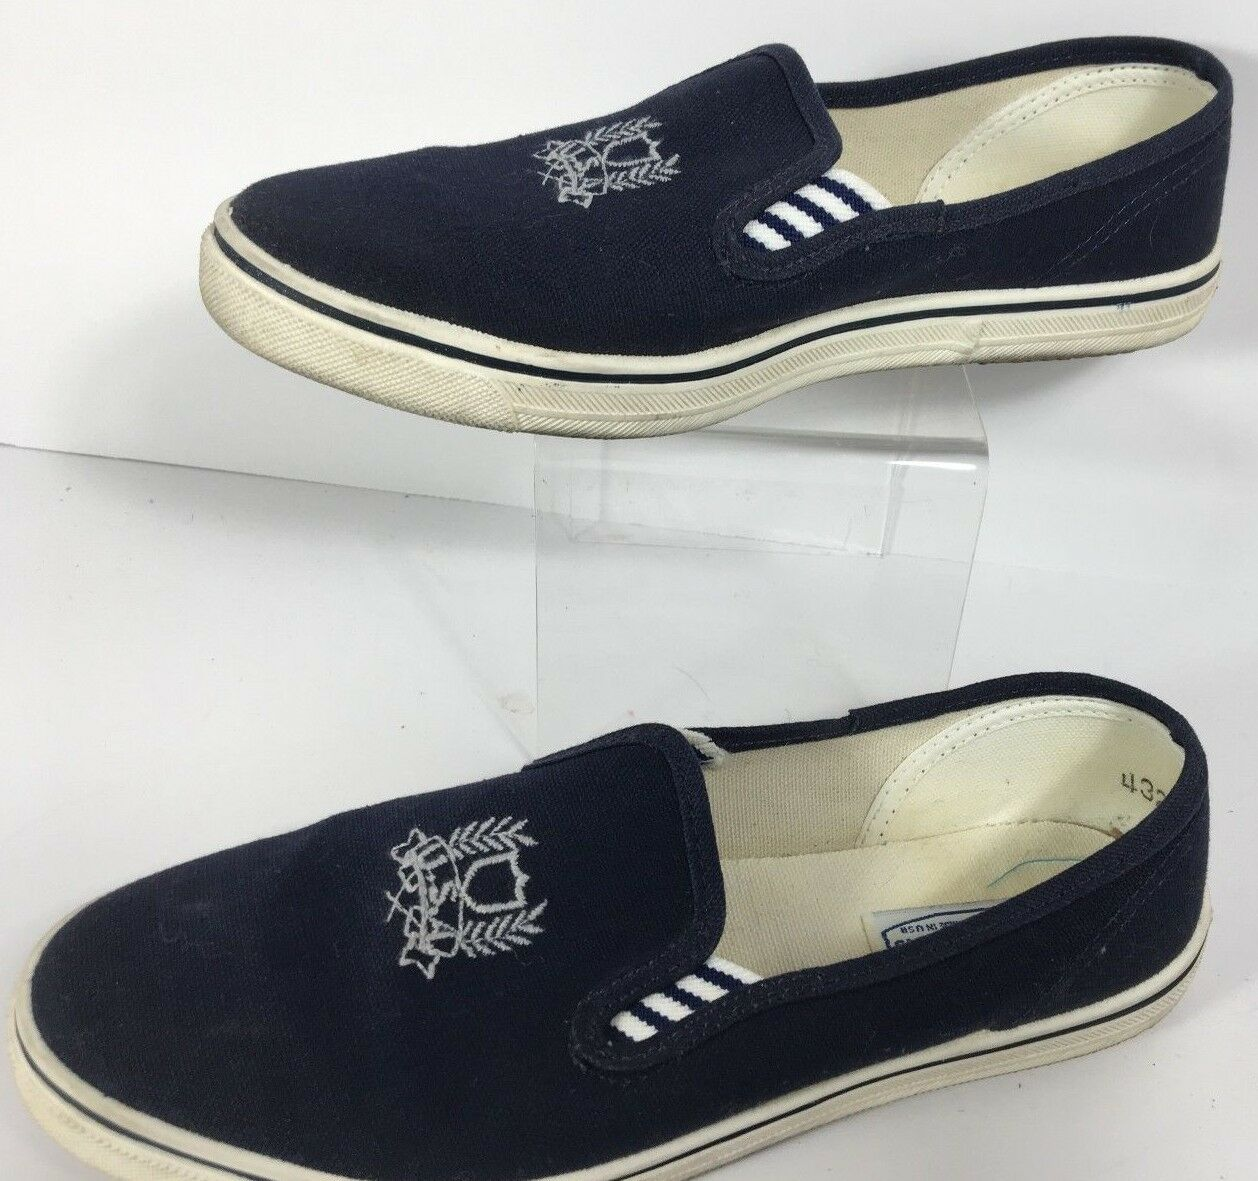 Vintage Women's US Sports Fashion Boat shoes Loafers bluee Size 6 M